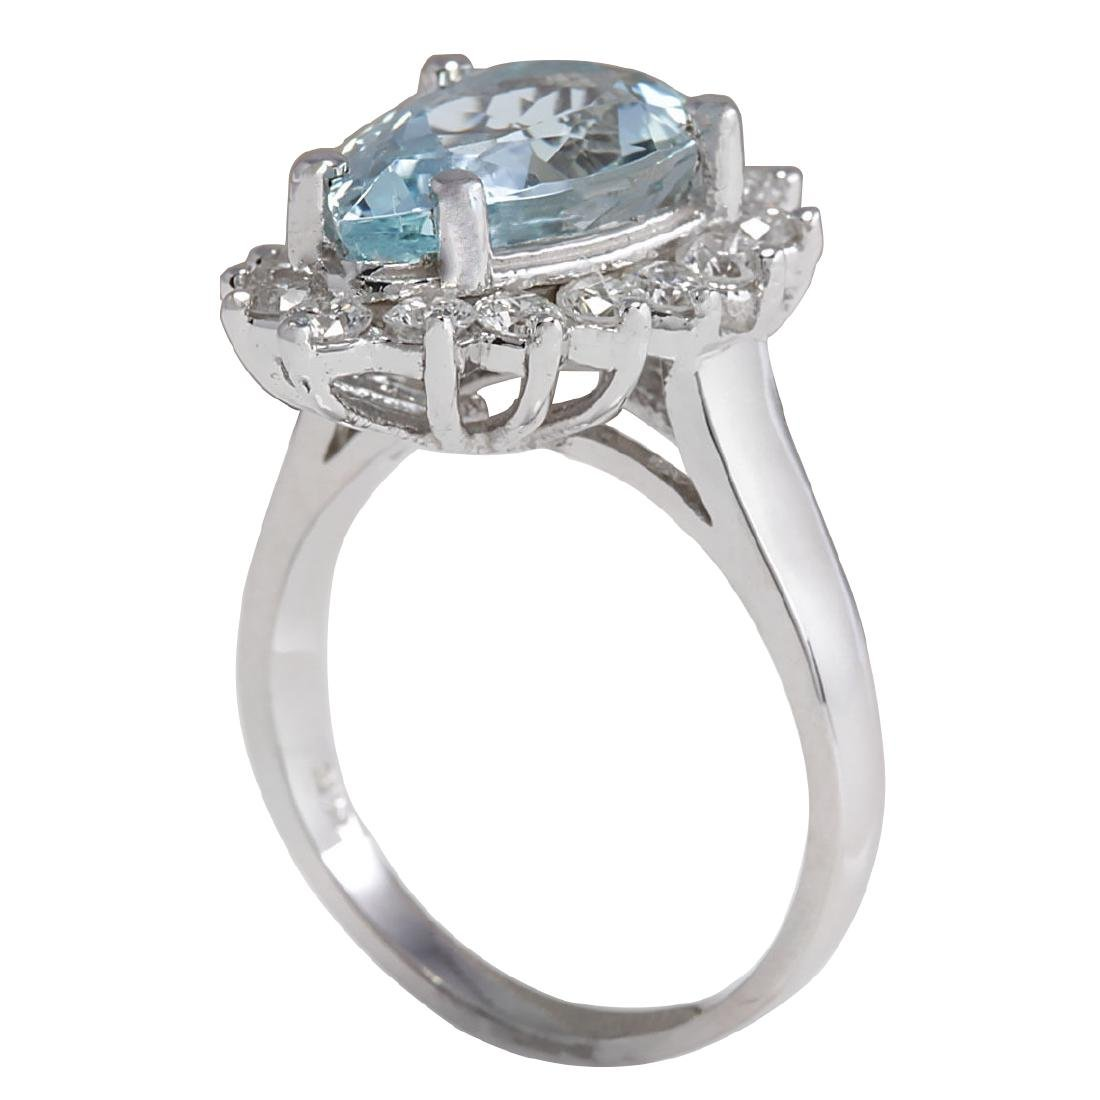 4.63CTW Natural Aquamarine And Diamond Ring In 18K - 3